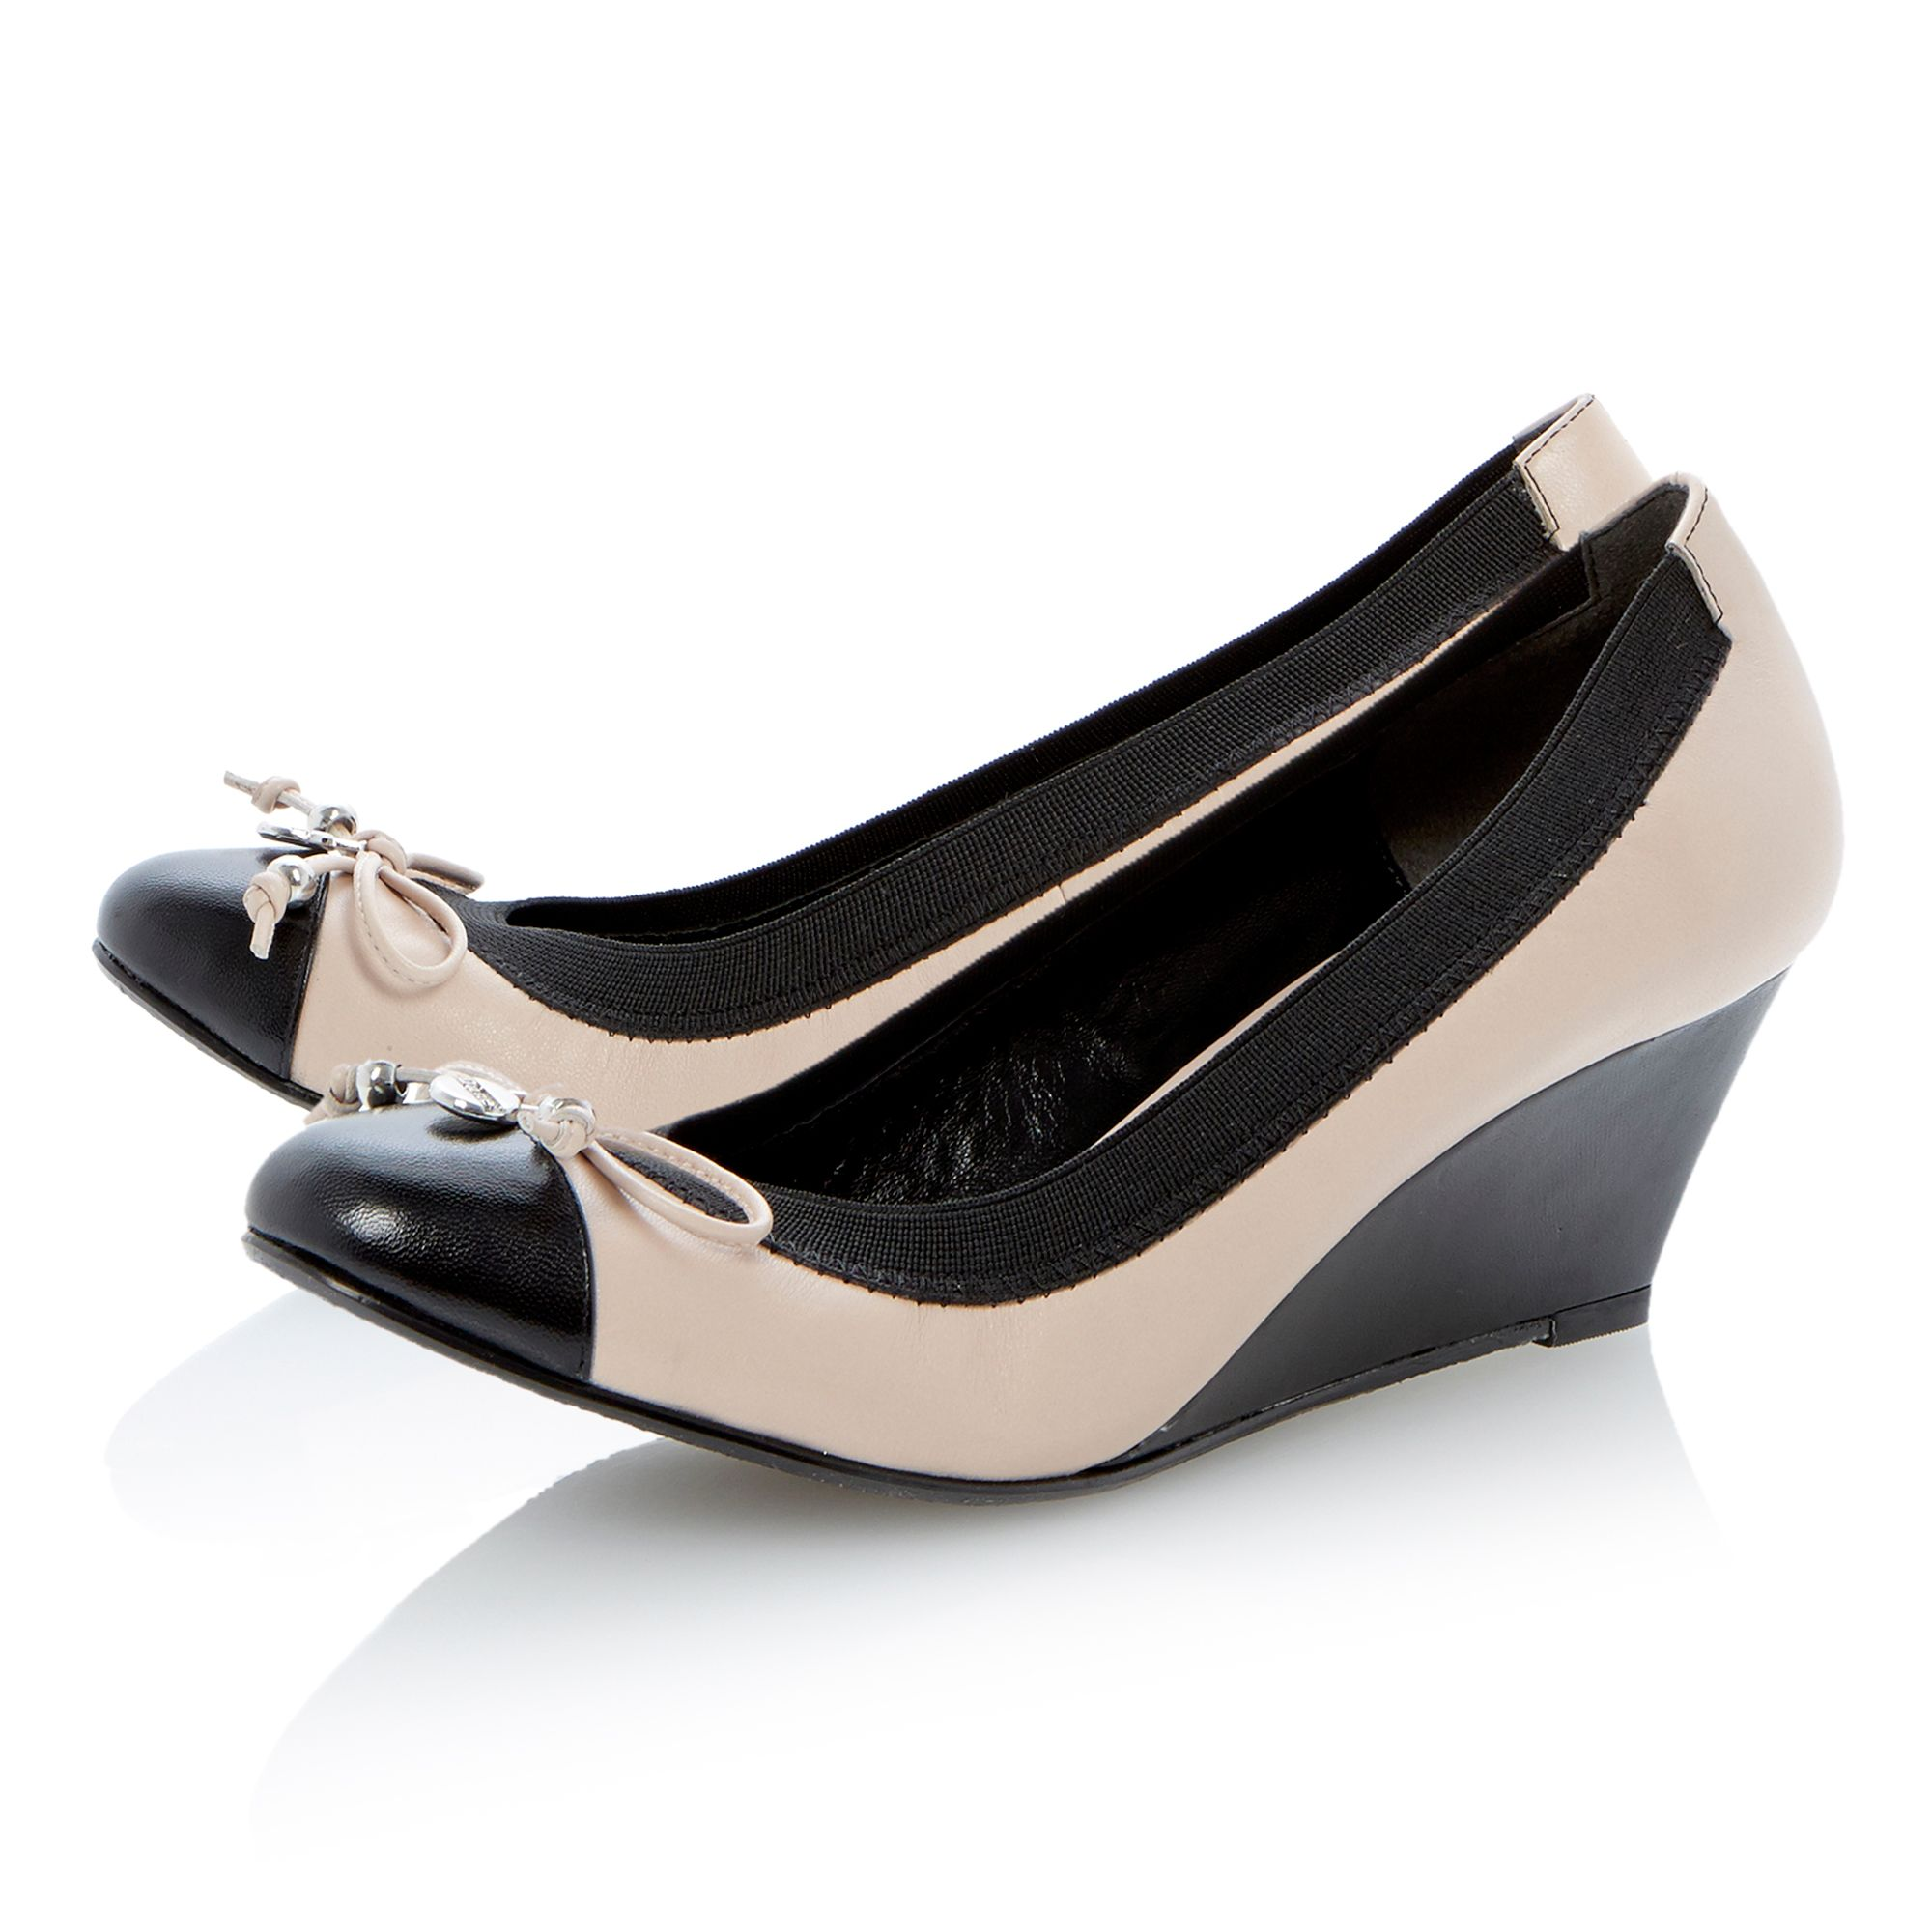 Atara suede round toe wedge court shoes